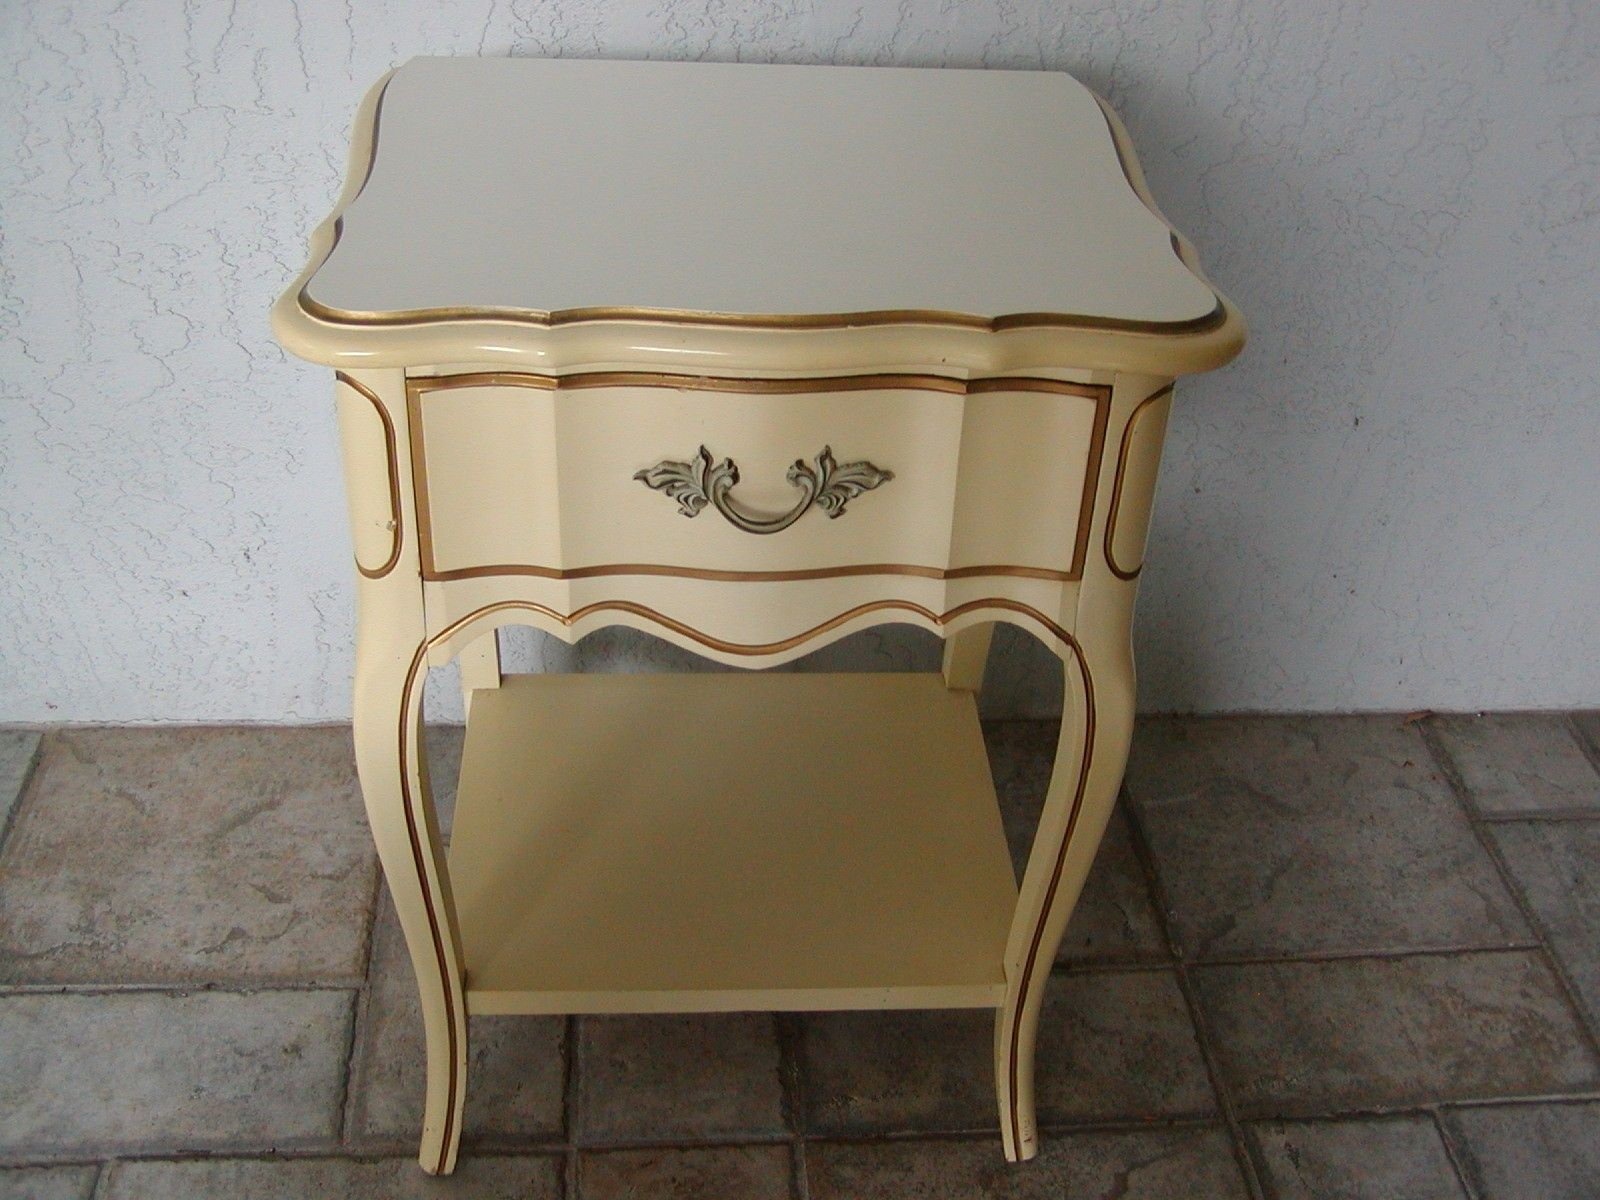 Vintage Dixie Furniture Night Table By Onlinechic On Etsy, $50.00 I NEEEED  One Of These